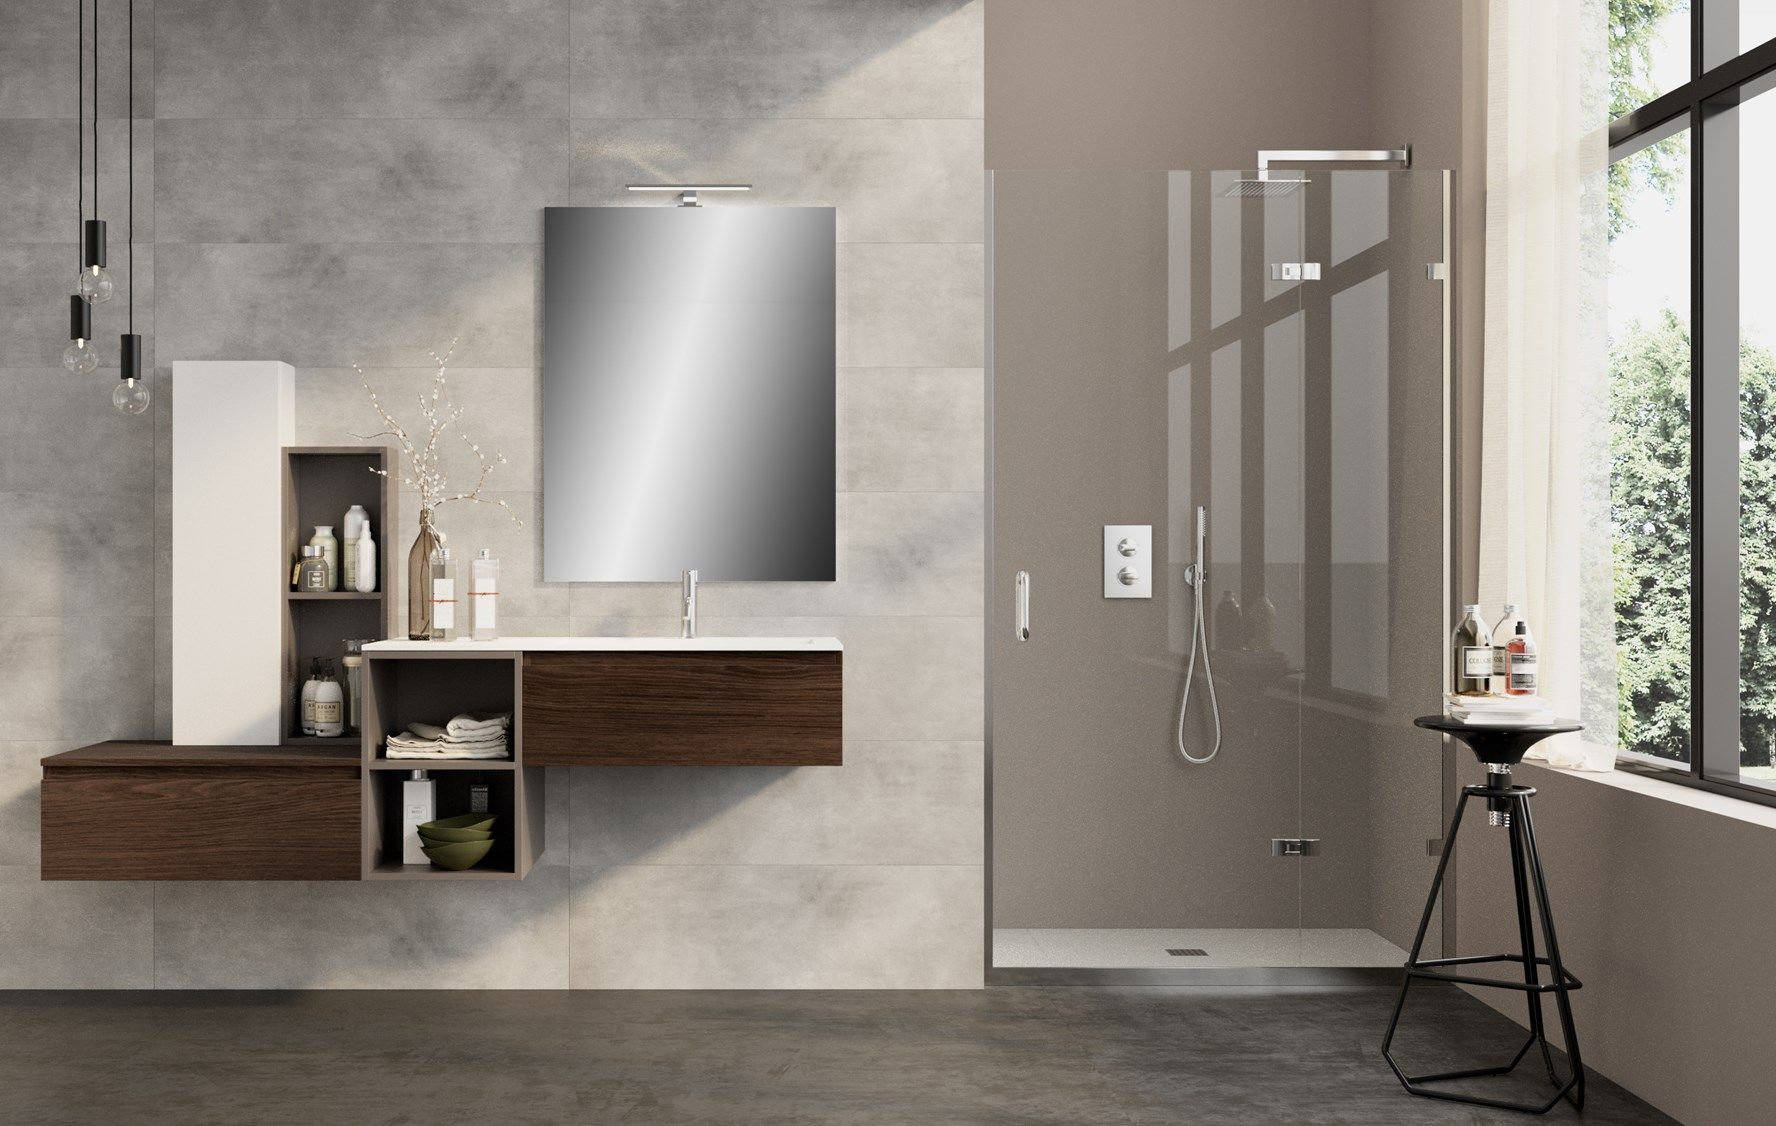 Http://www.archiproducts.com/en/news/mobiltesino